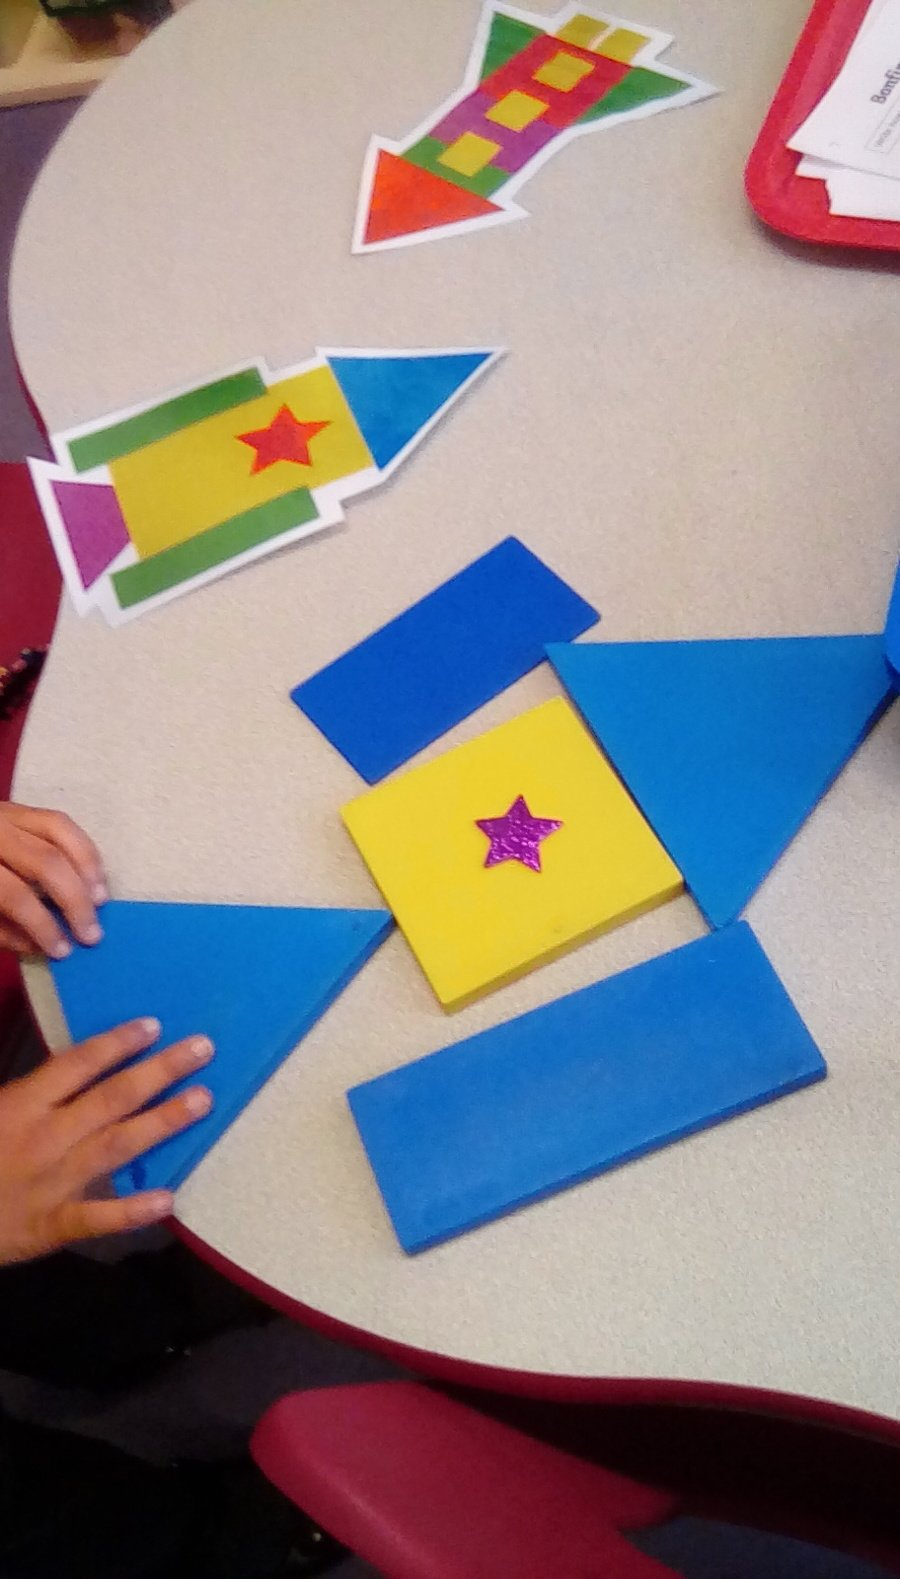 Creating representions of fireworks using 2D shapes.